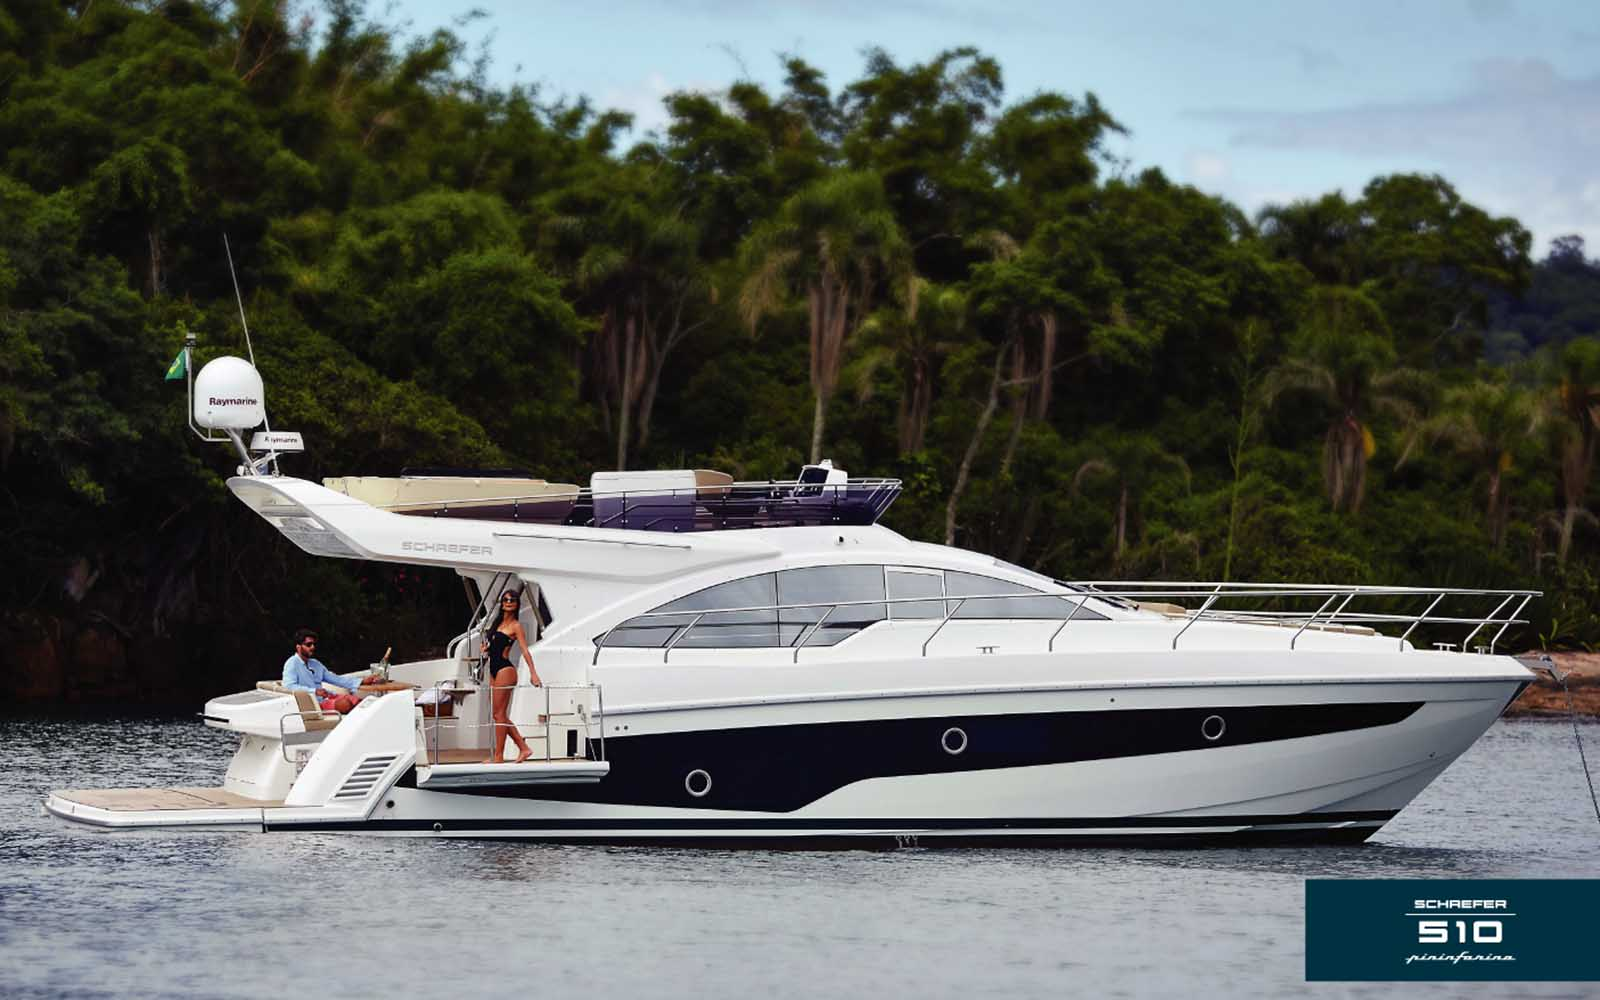 schaefer 510 pininfarina - boat shopping